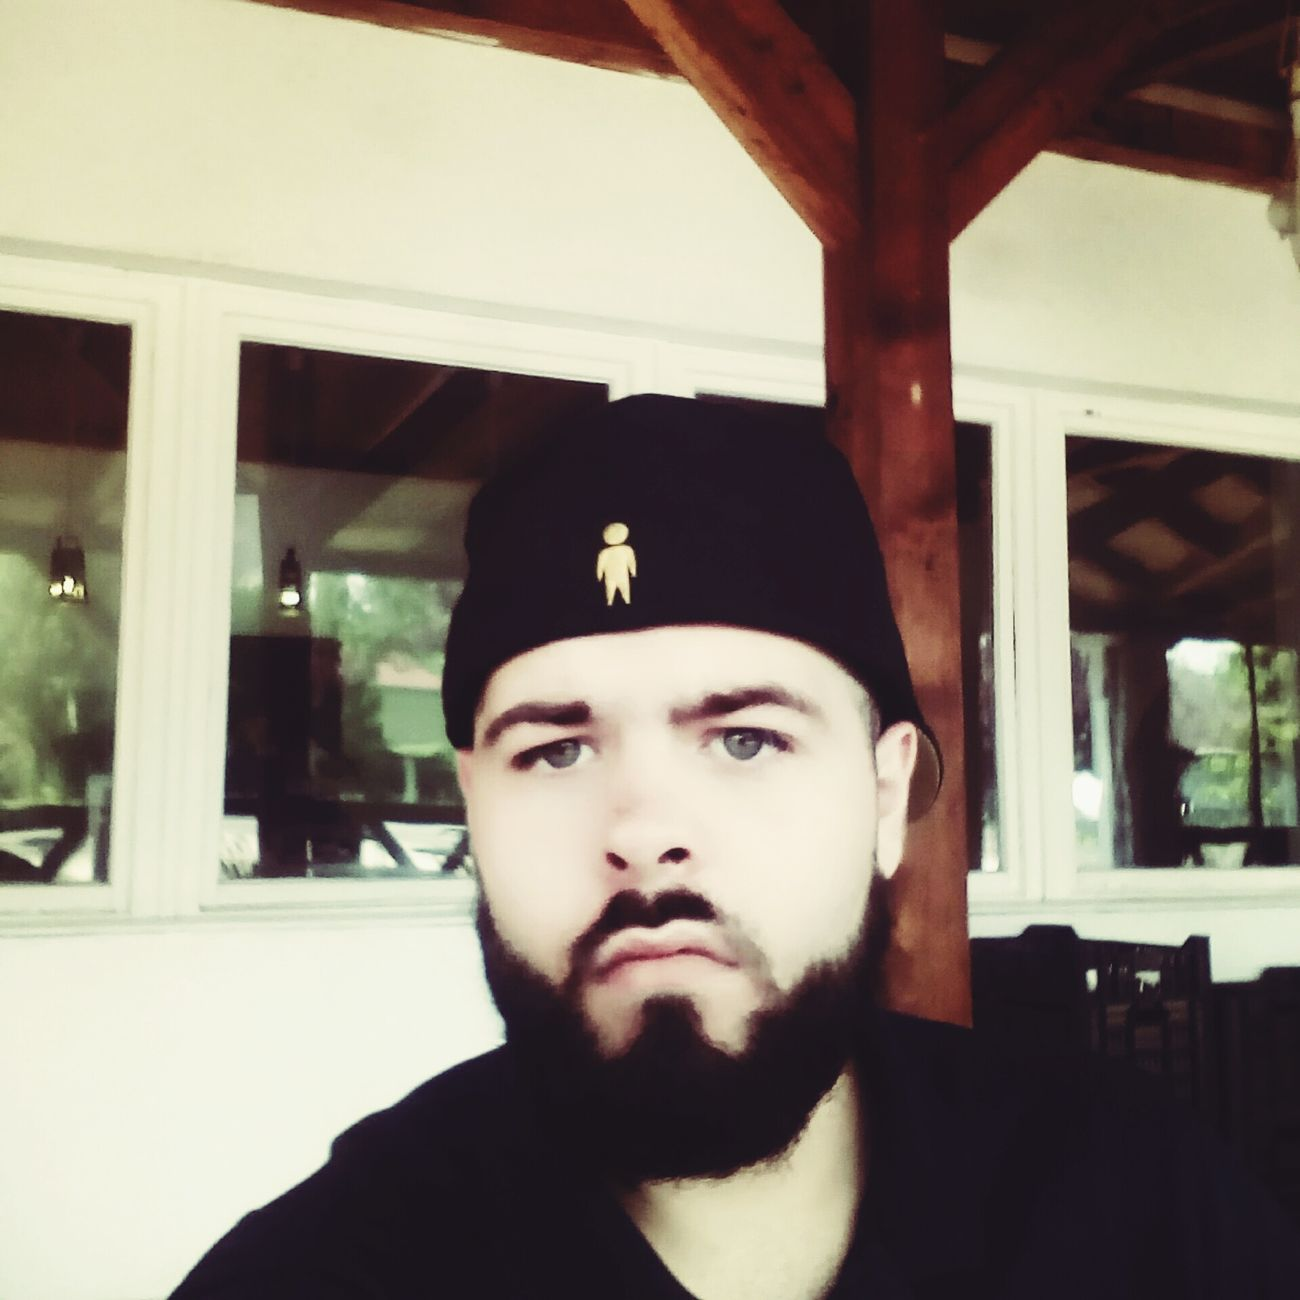 Beardlife Beard Beardgang Noshave Fuckshave Beastmode Style Fashion Fullcap NewEra lace up